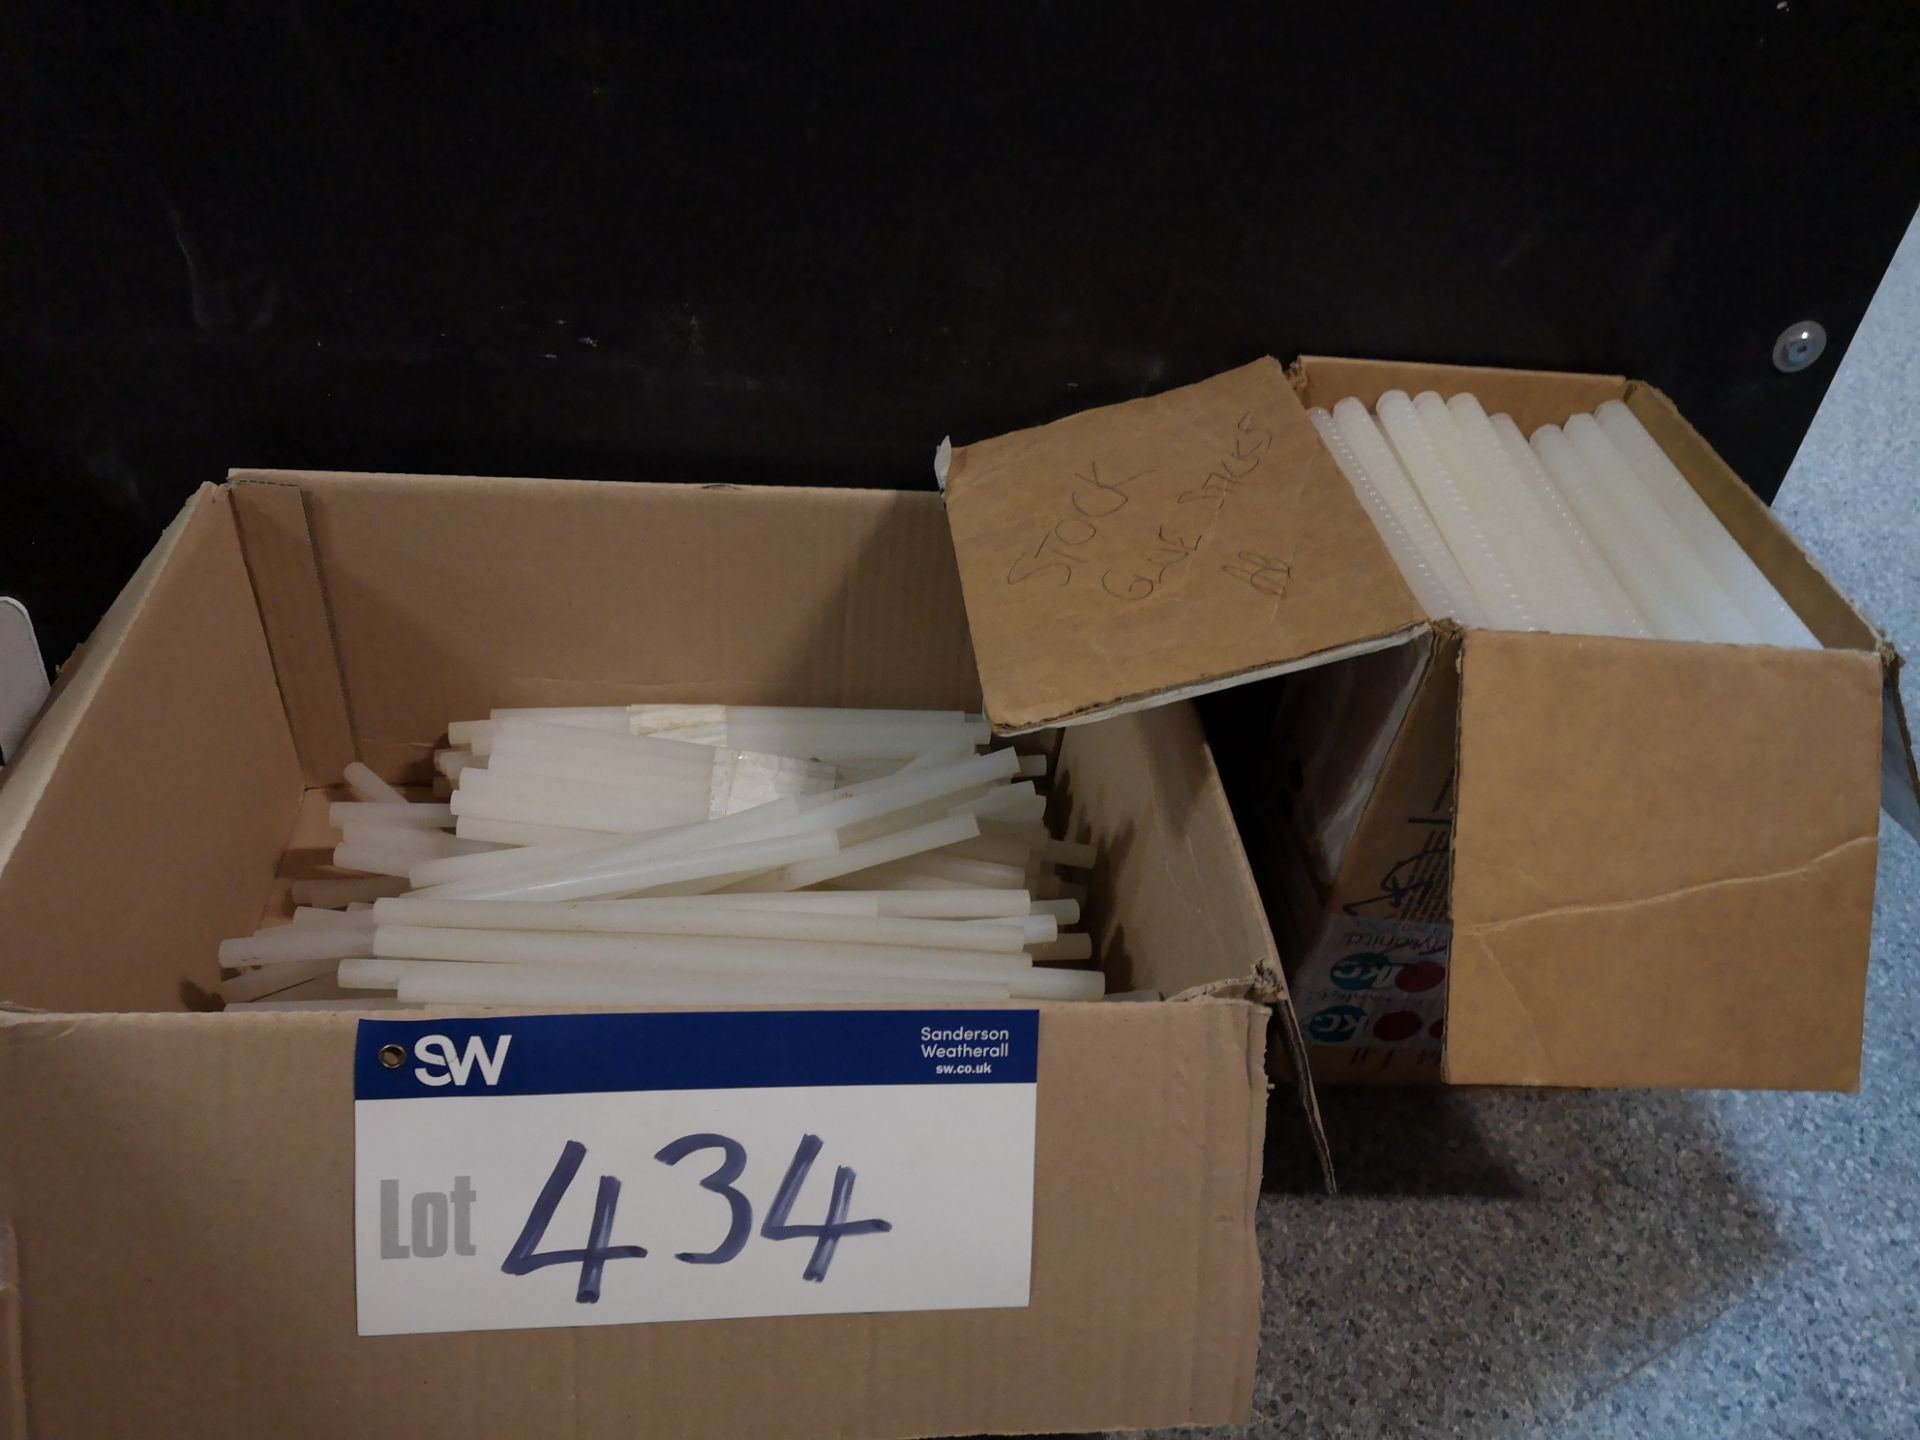 Lot 434 - Quantity of Hot Melt Glue Sticks as Set Out In 2 Boxes